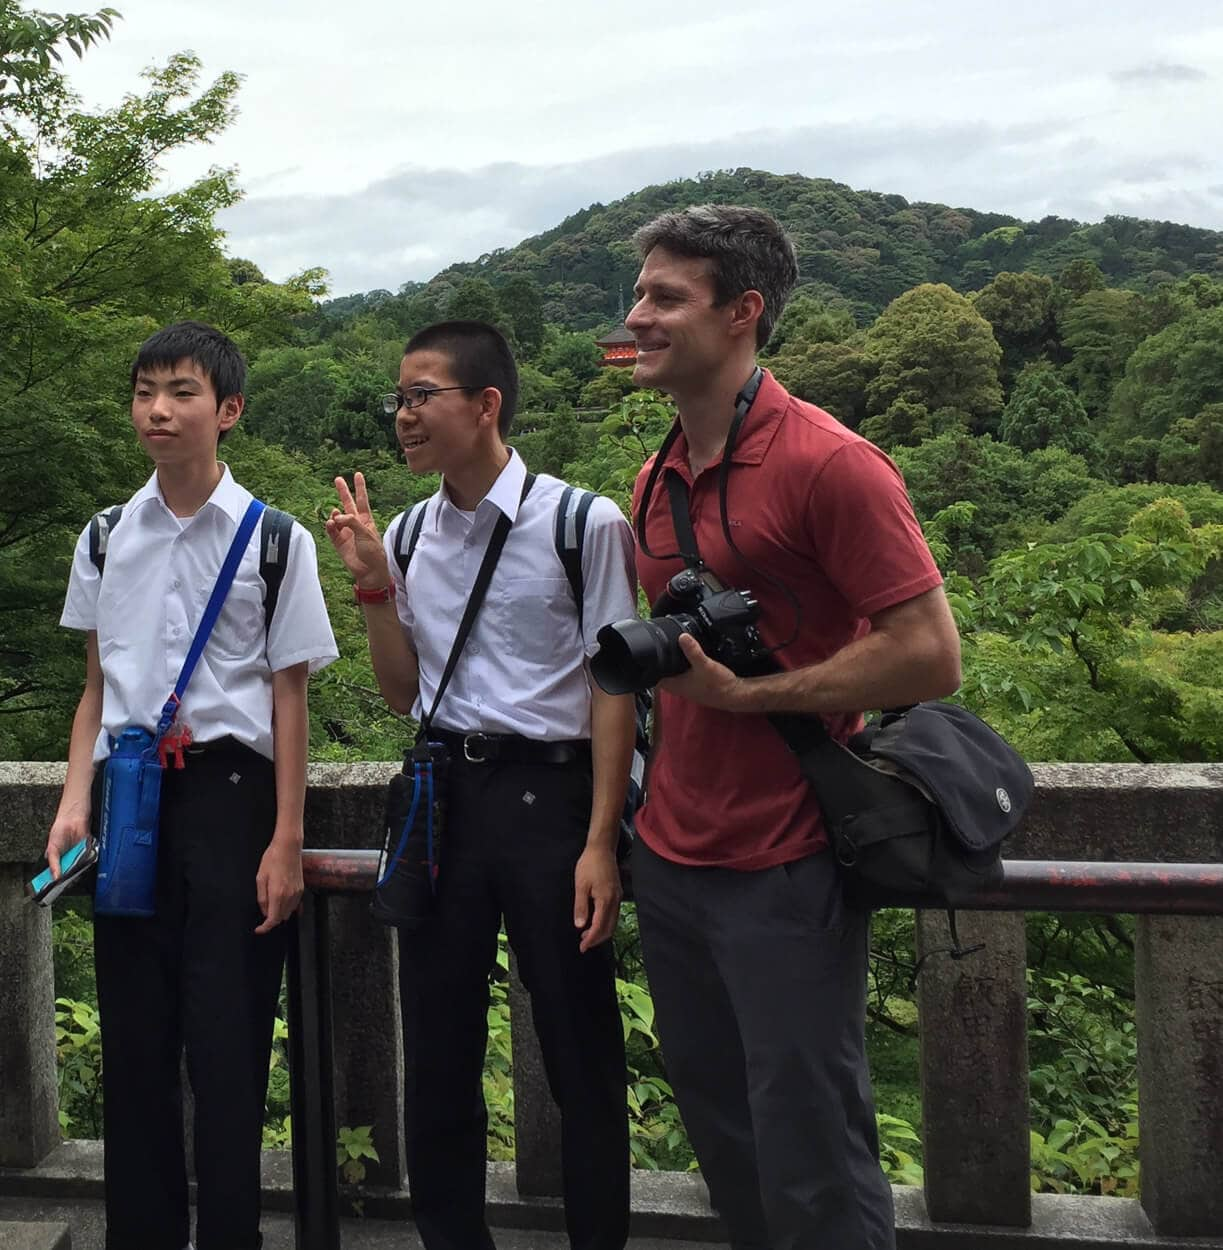 Me helping Japanese students